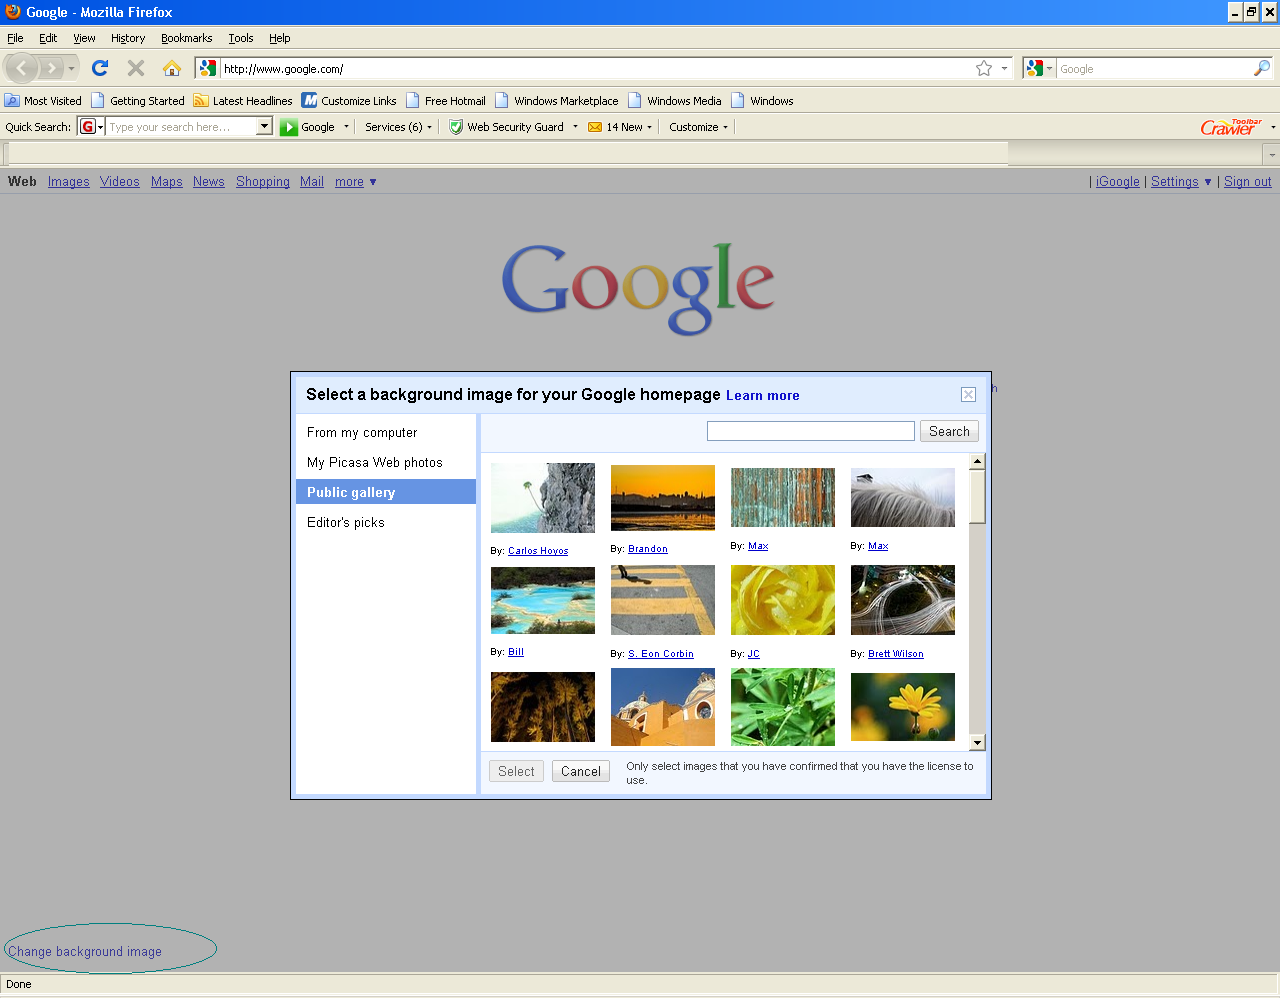 Google homepage wallpaper for Homepage wallpaper